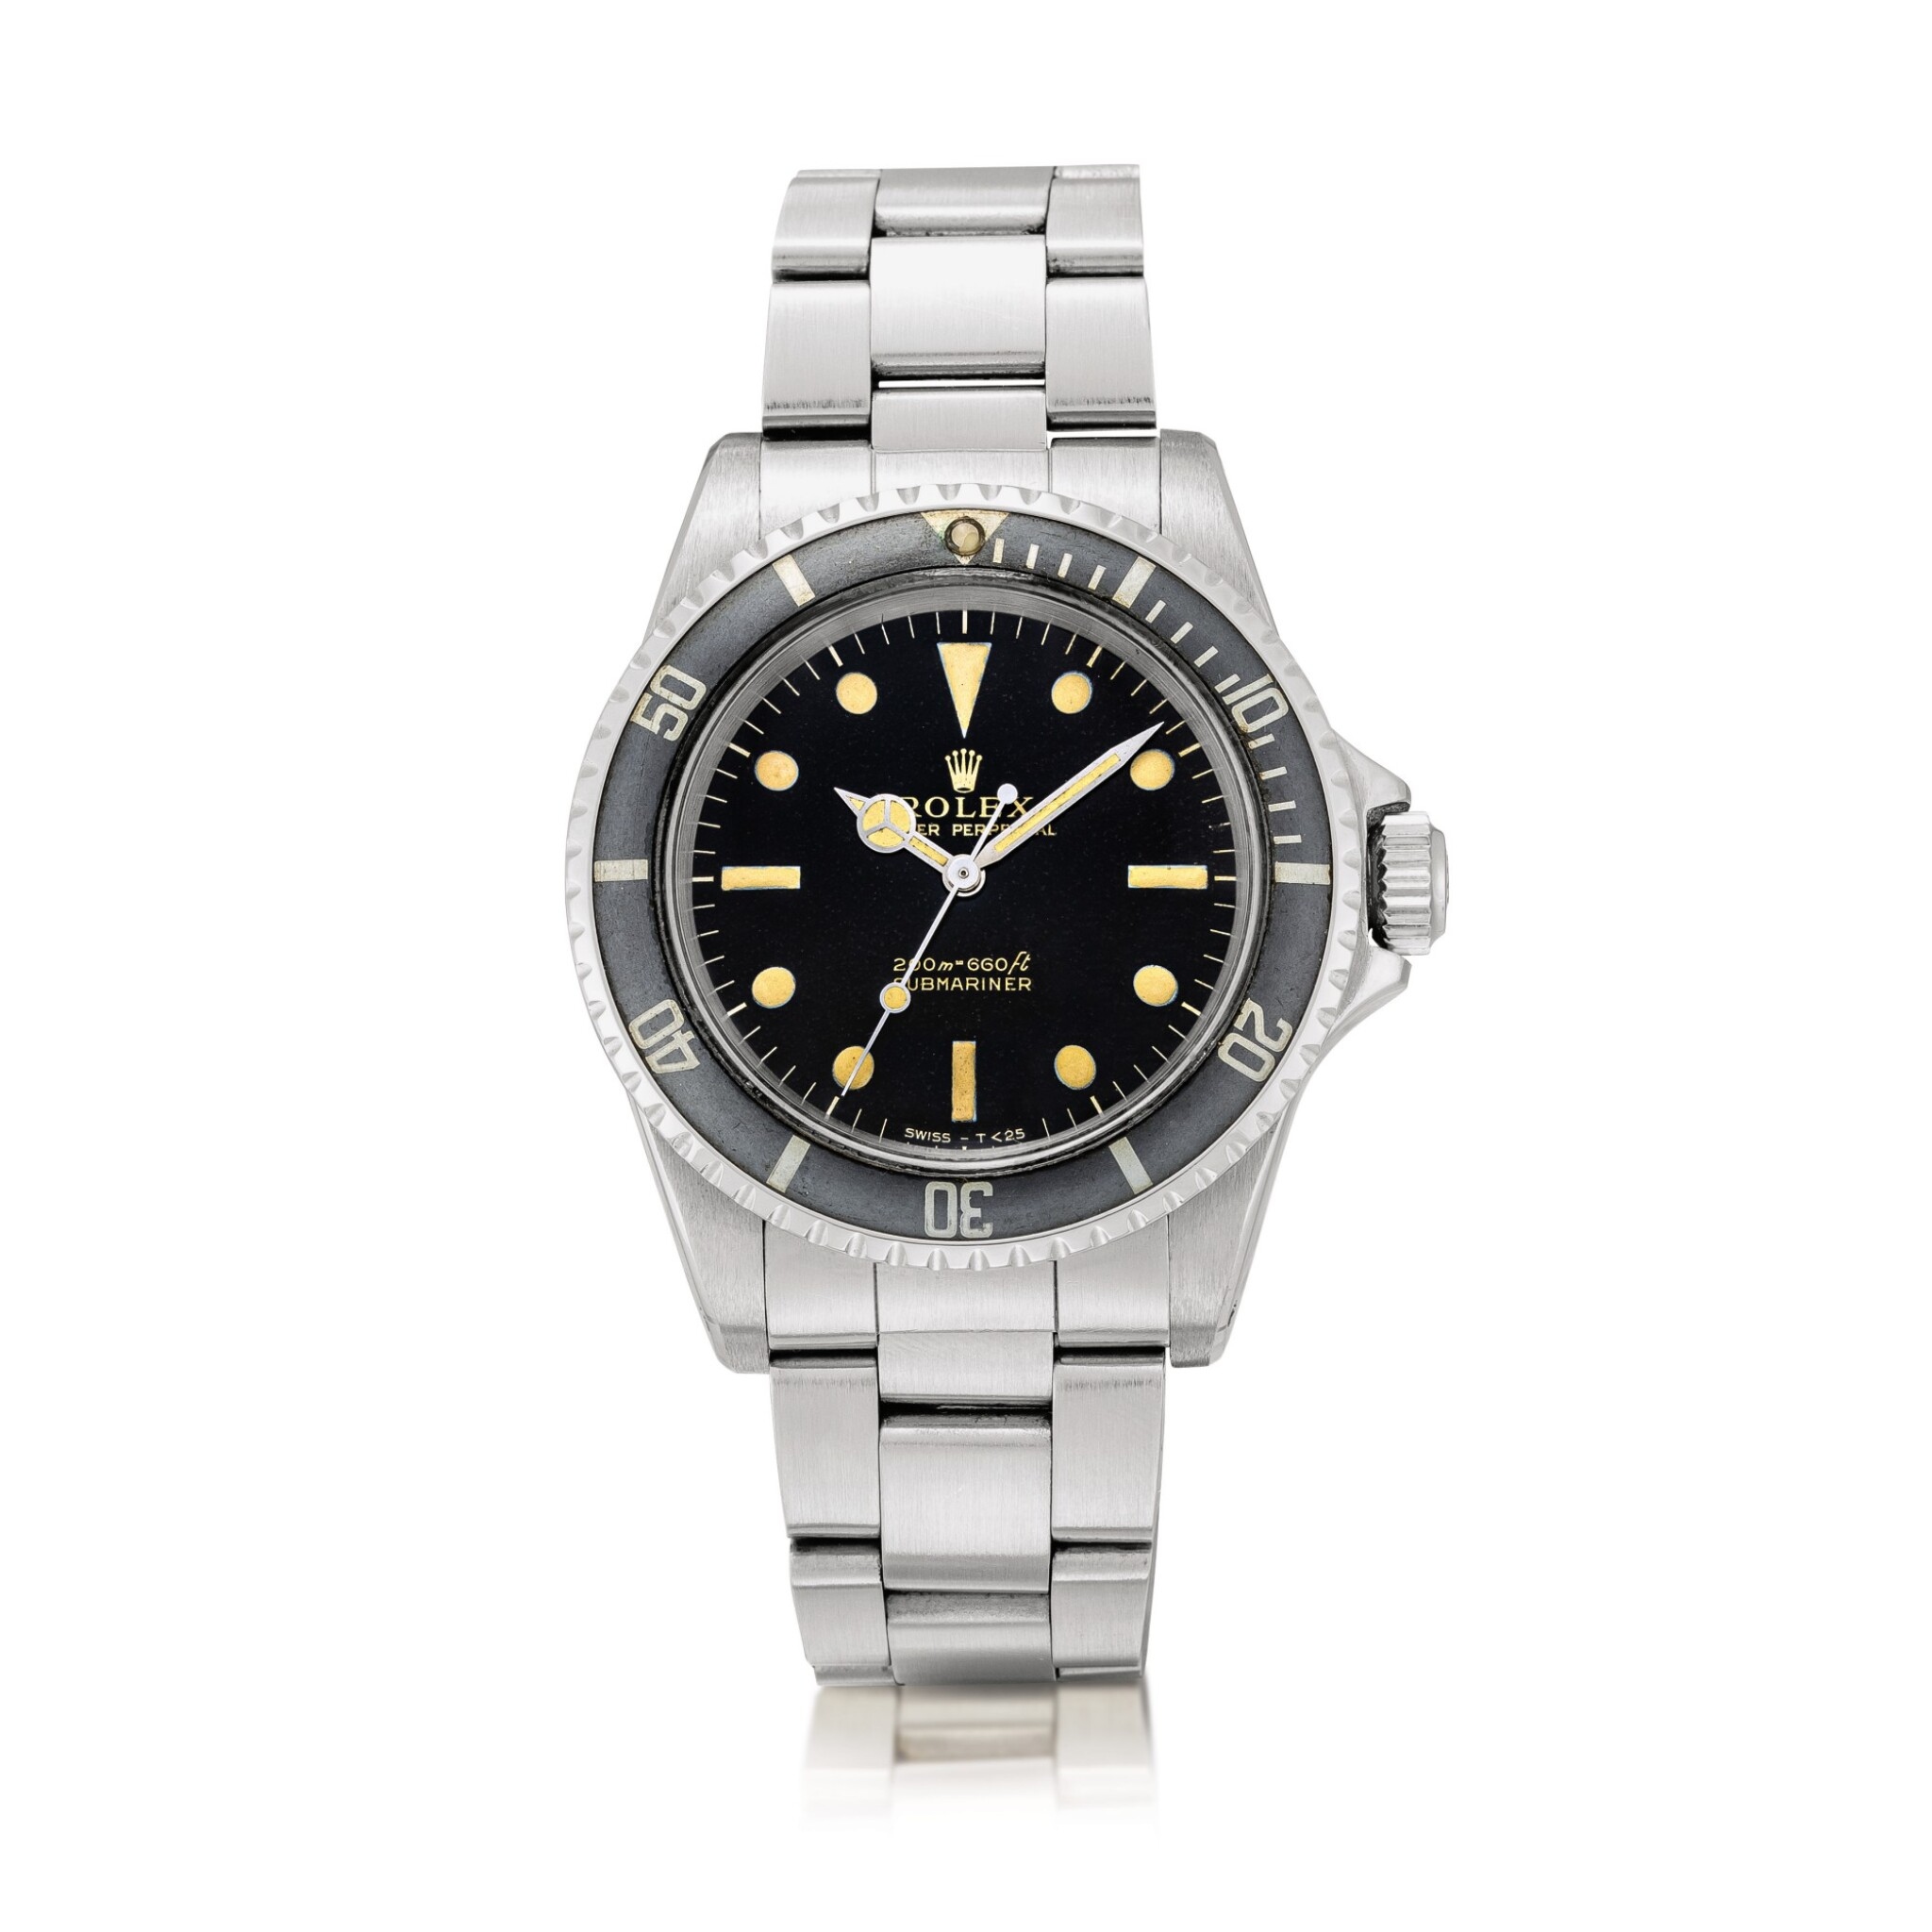 View full screen - View 1 of Lot 2126. Rolex | Submariner, Reference 5513, A stainless steel wristwatch with gilt dial and bracelet, Circa 1966 | 勞力士 | Submariner 型號5513 精鋼鏈帶腕錶,約1966年製.